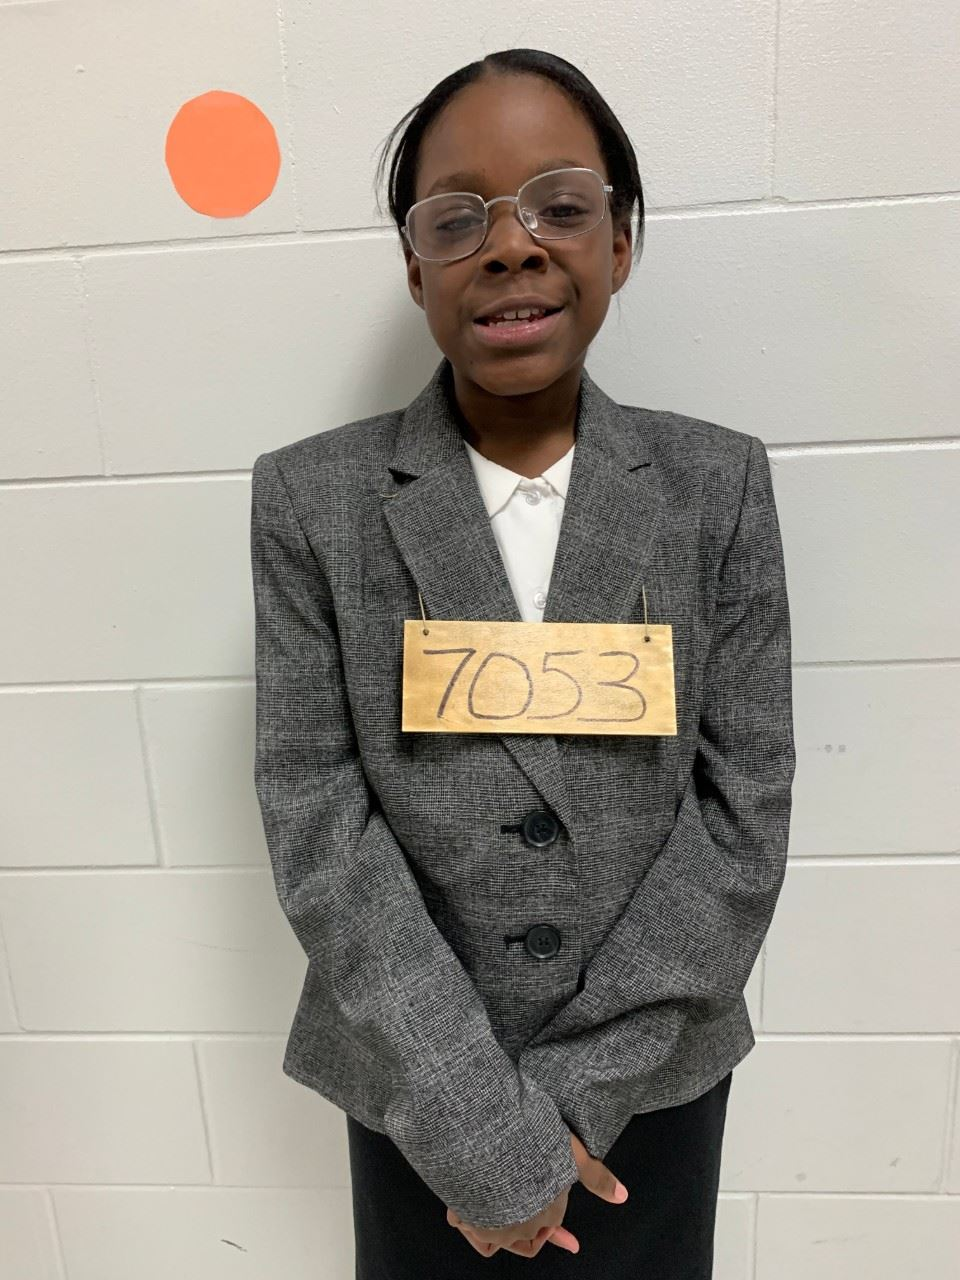 Student dressed as Rosa Parks